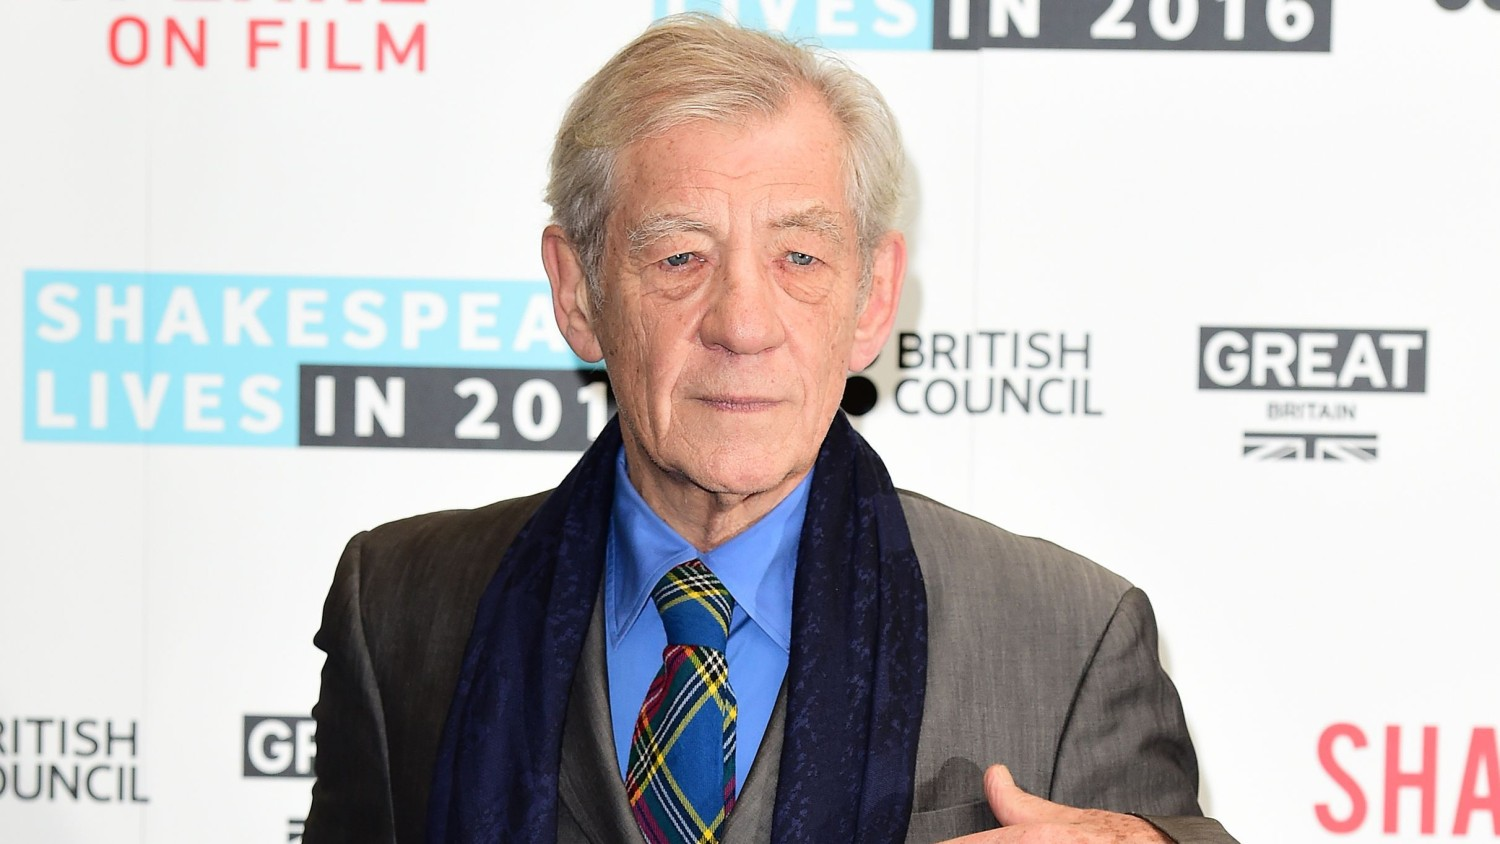 Sir Ian McKellen address the youth campaigners at the Stonewall Youth Awards.